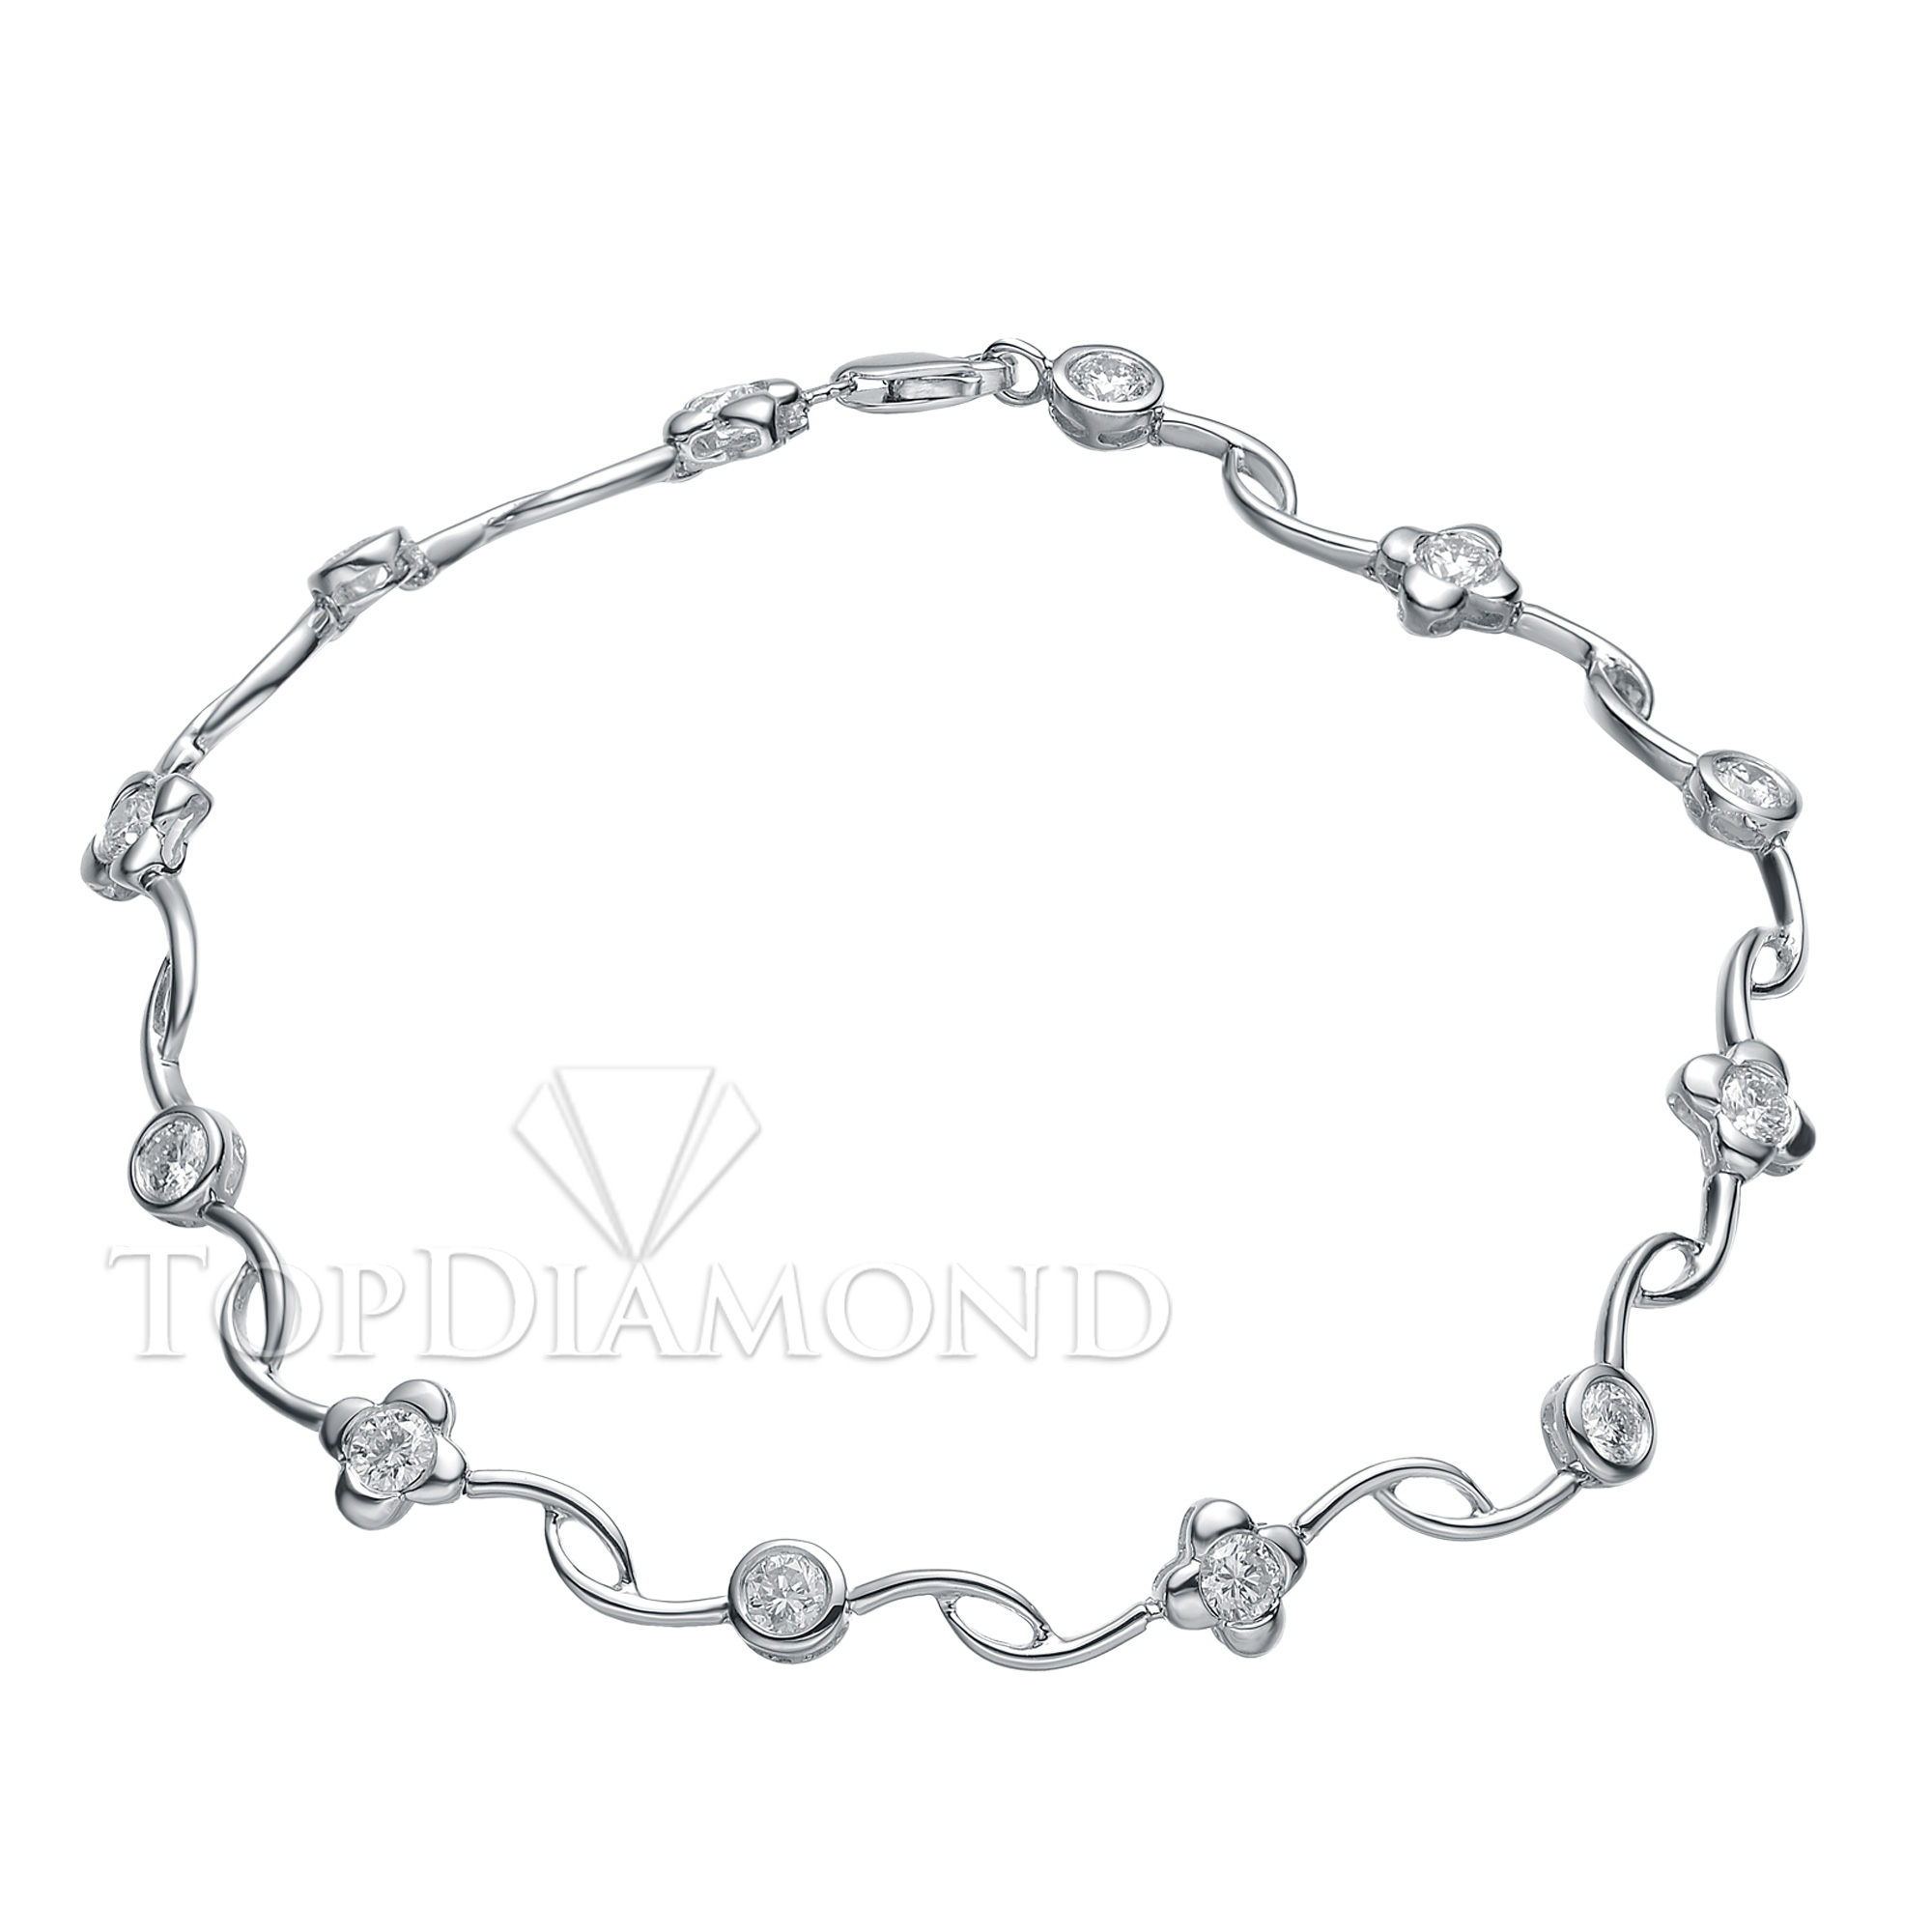 HPBL0136. Diamond 18K White Gold Bracelet HPBL0136, Diamond Bracelets. Bracelets. Top Diamonds & Jewelry